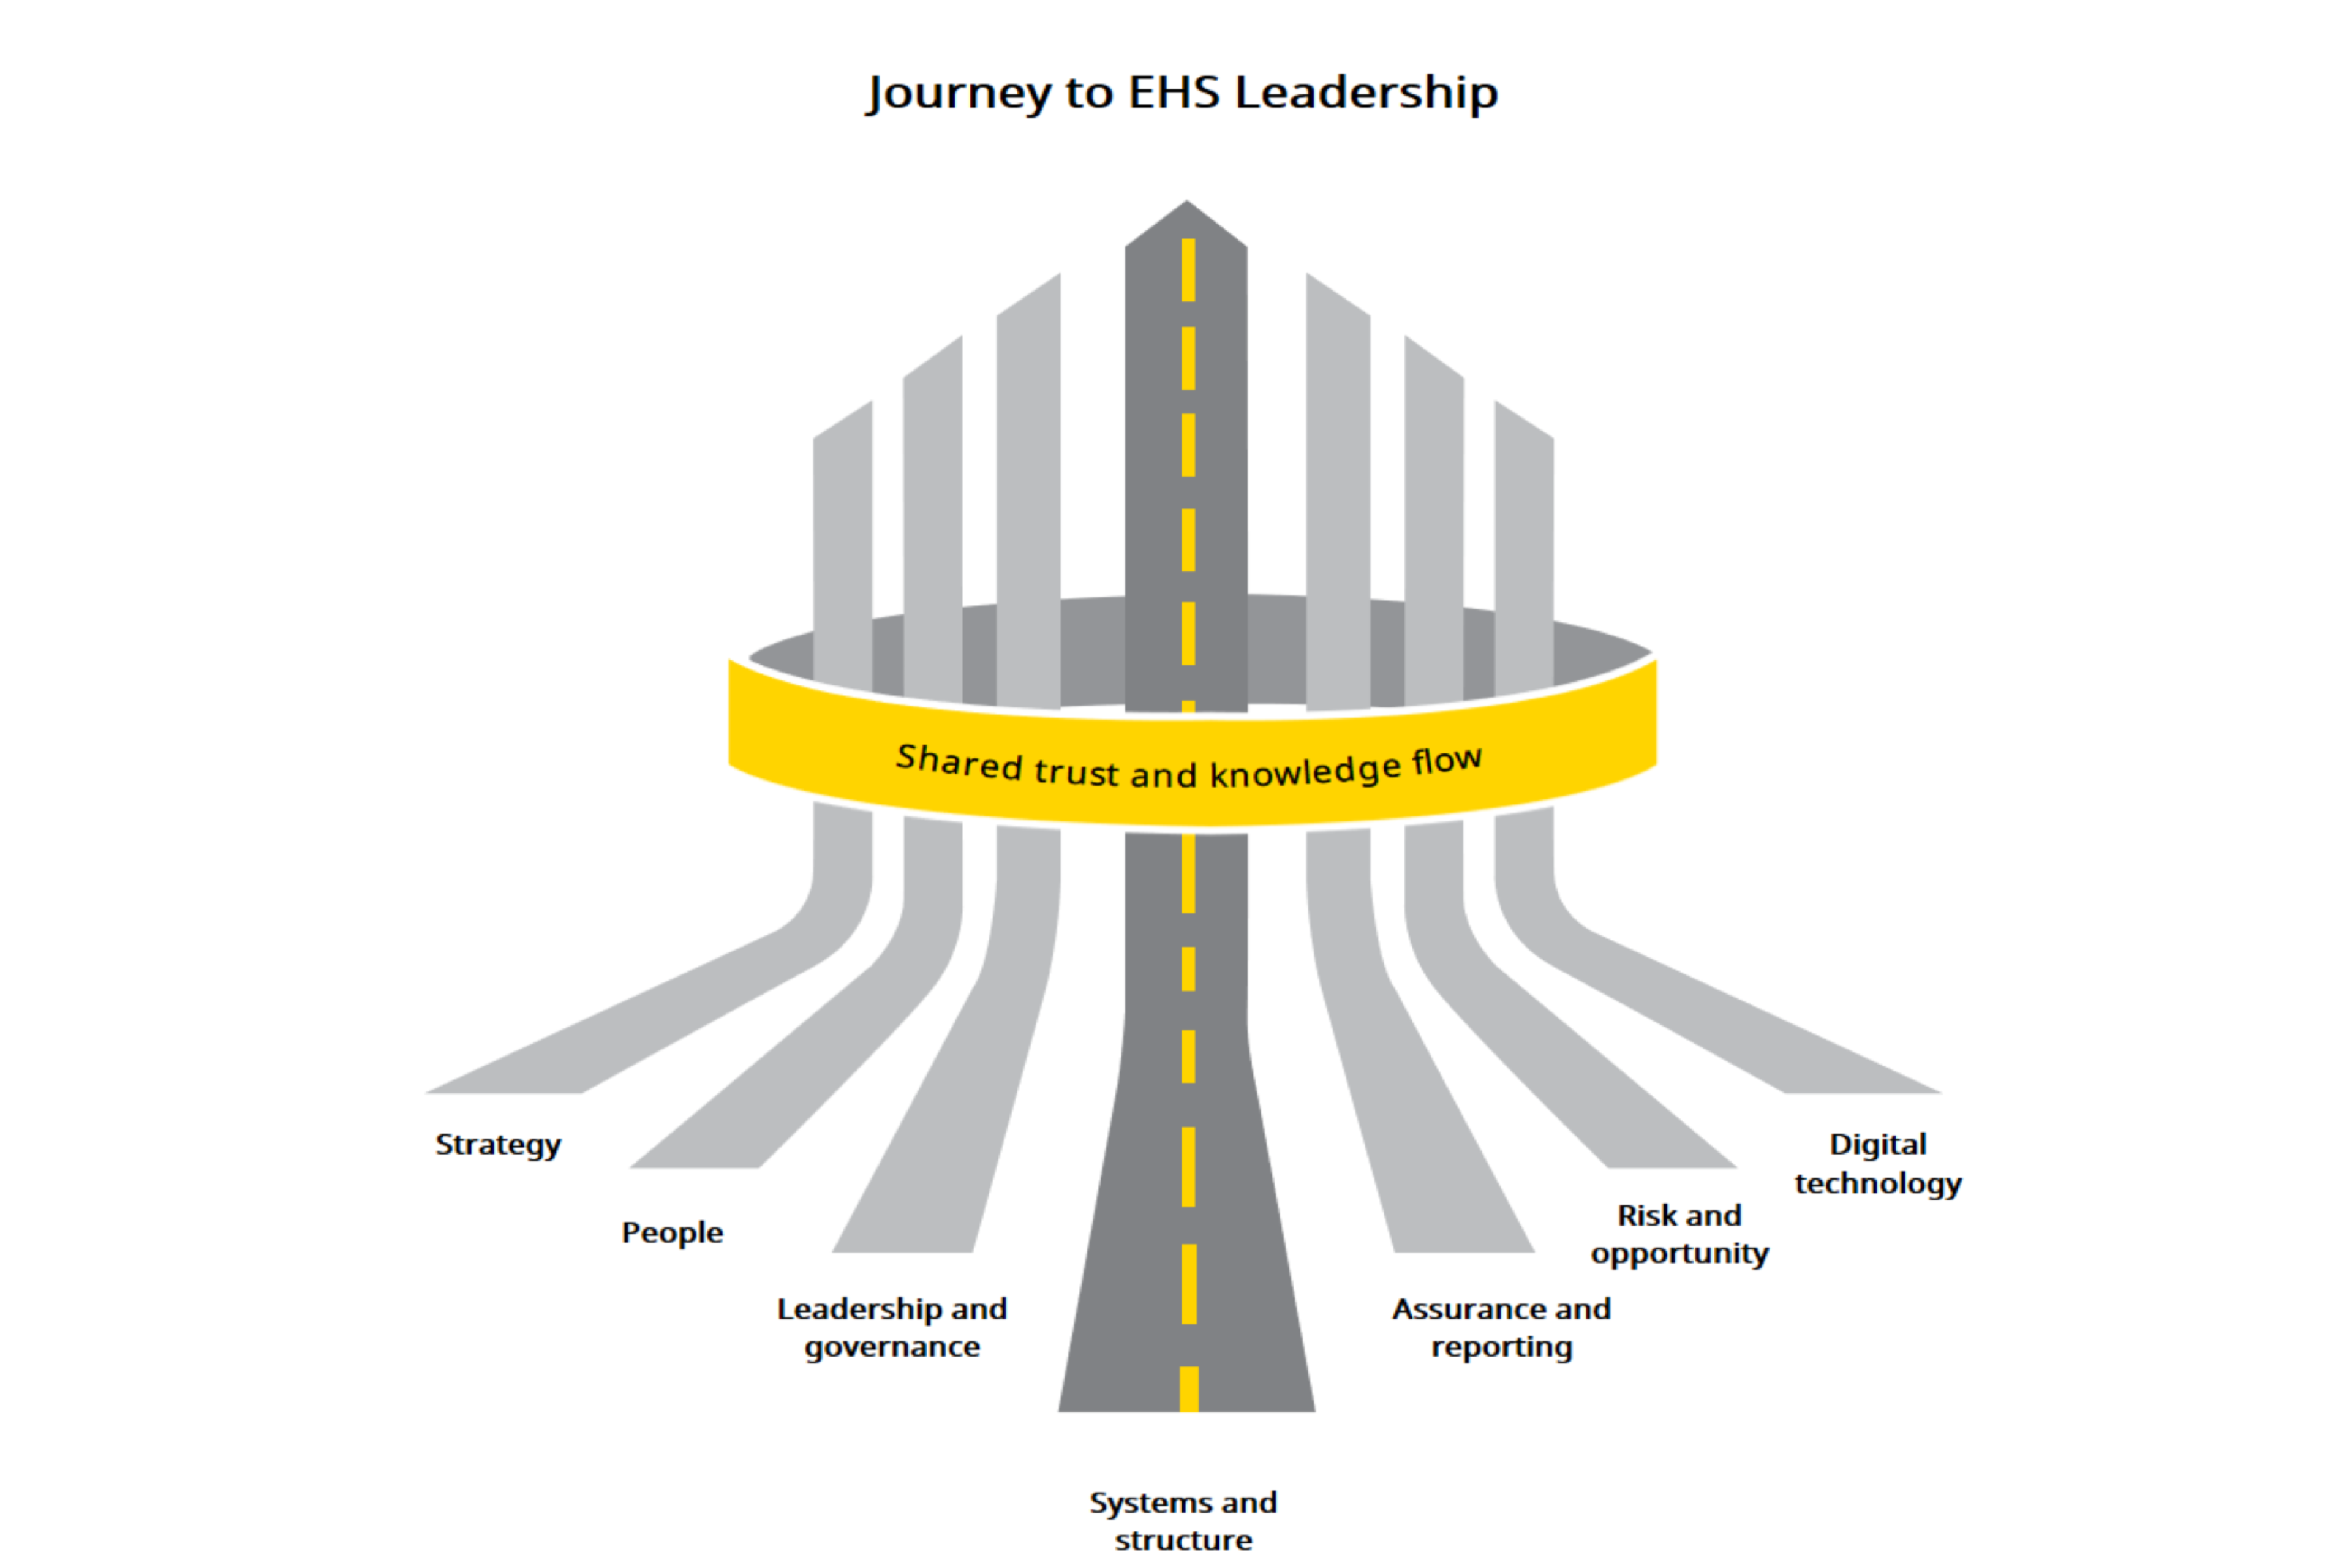 Journey to EHS leadership graphic